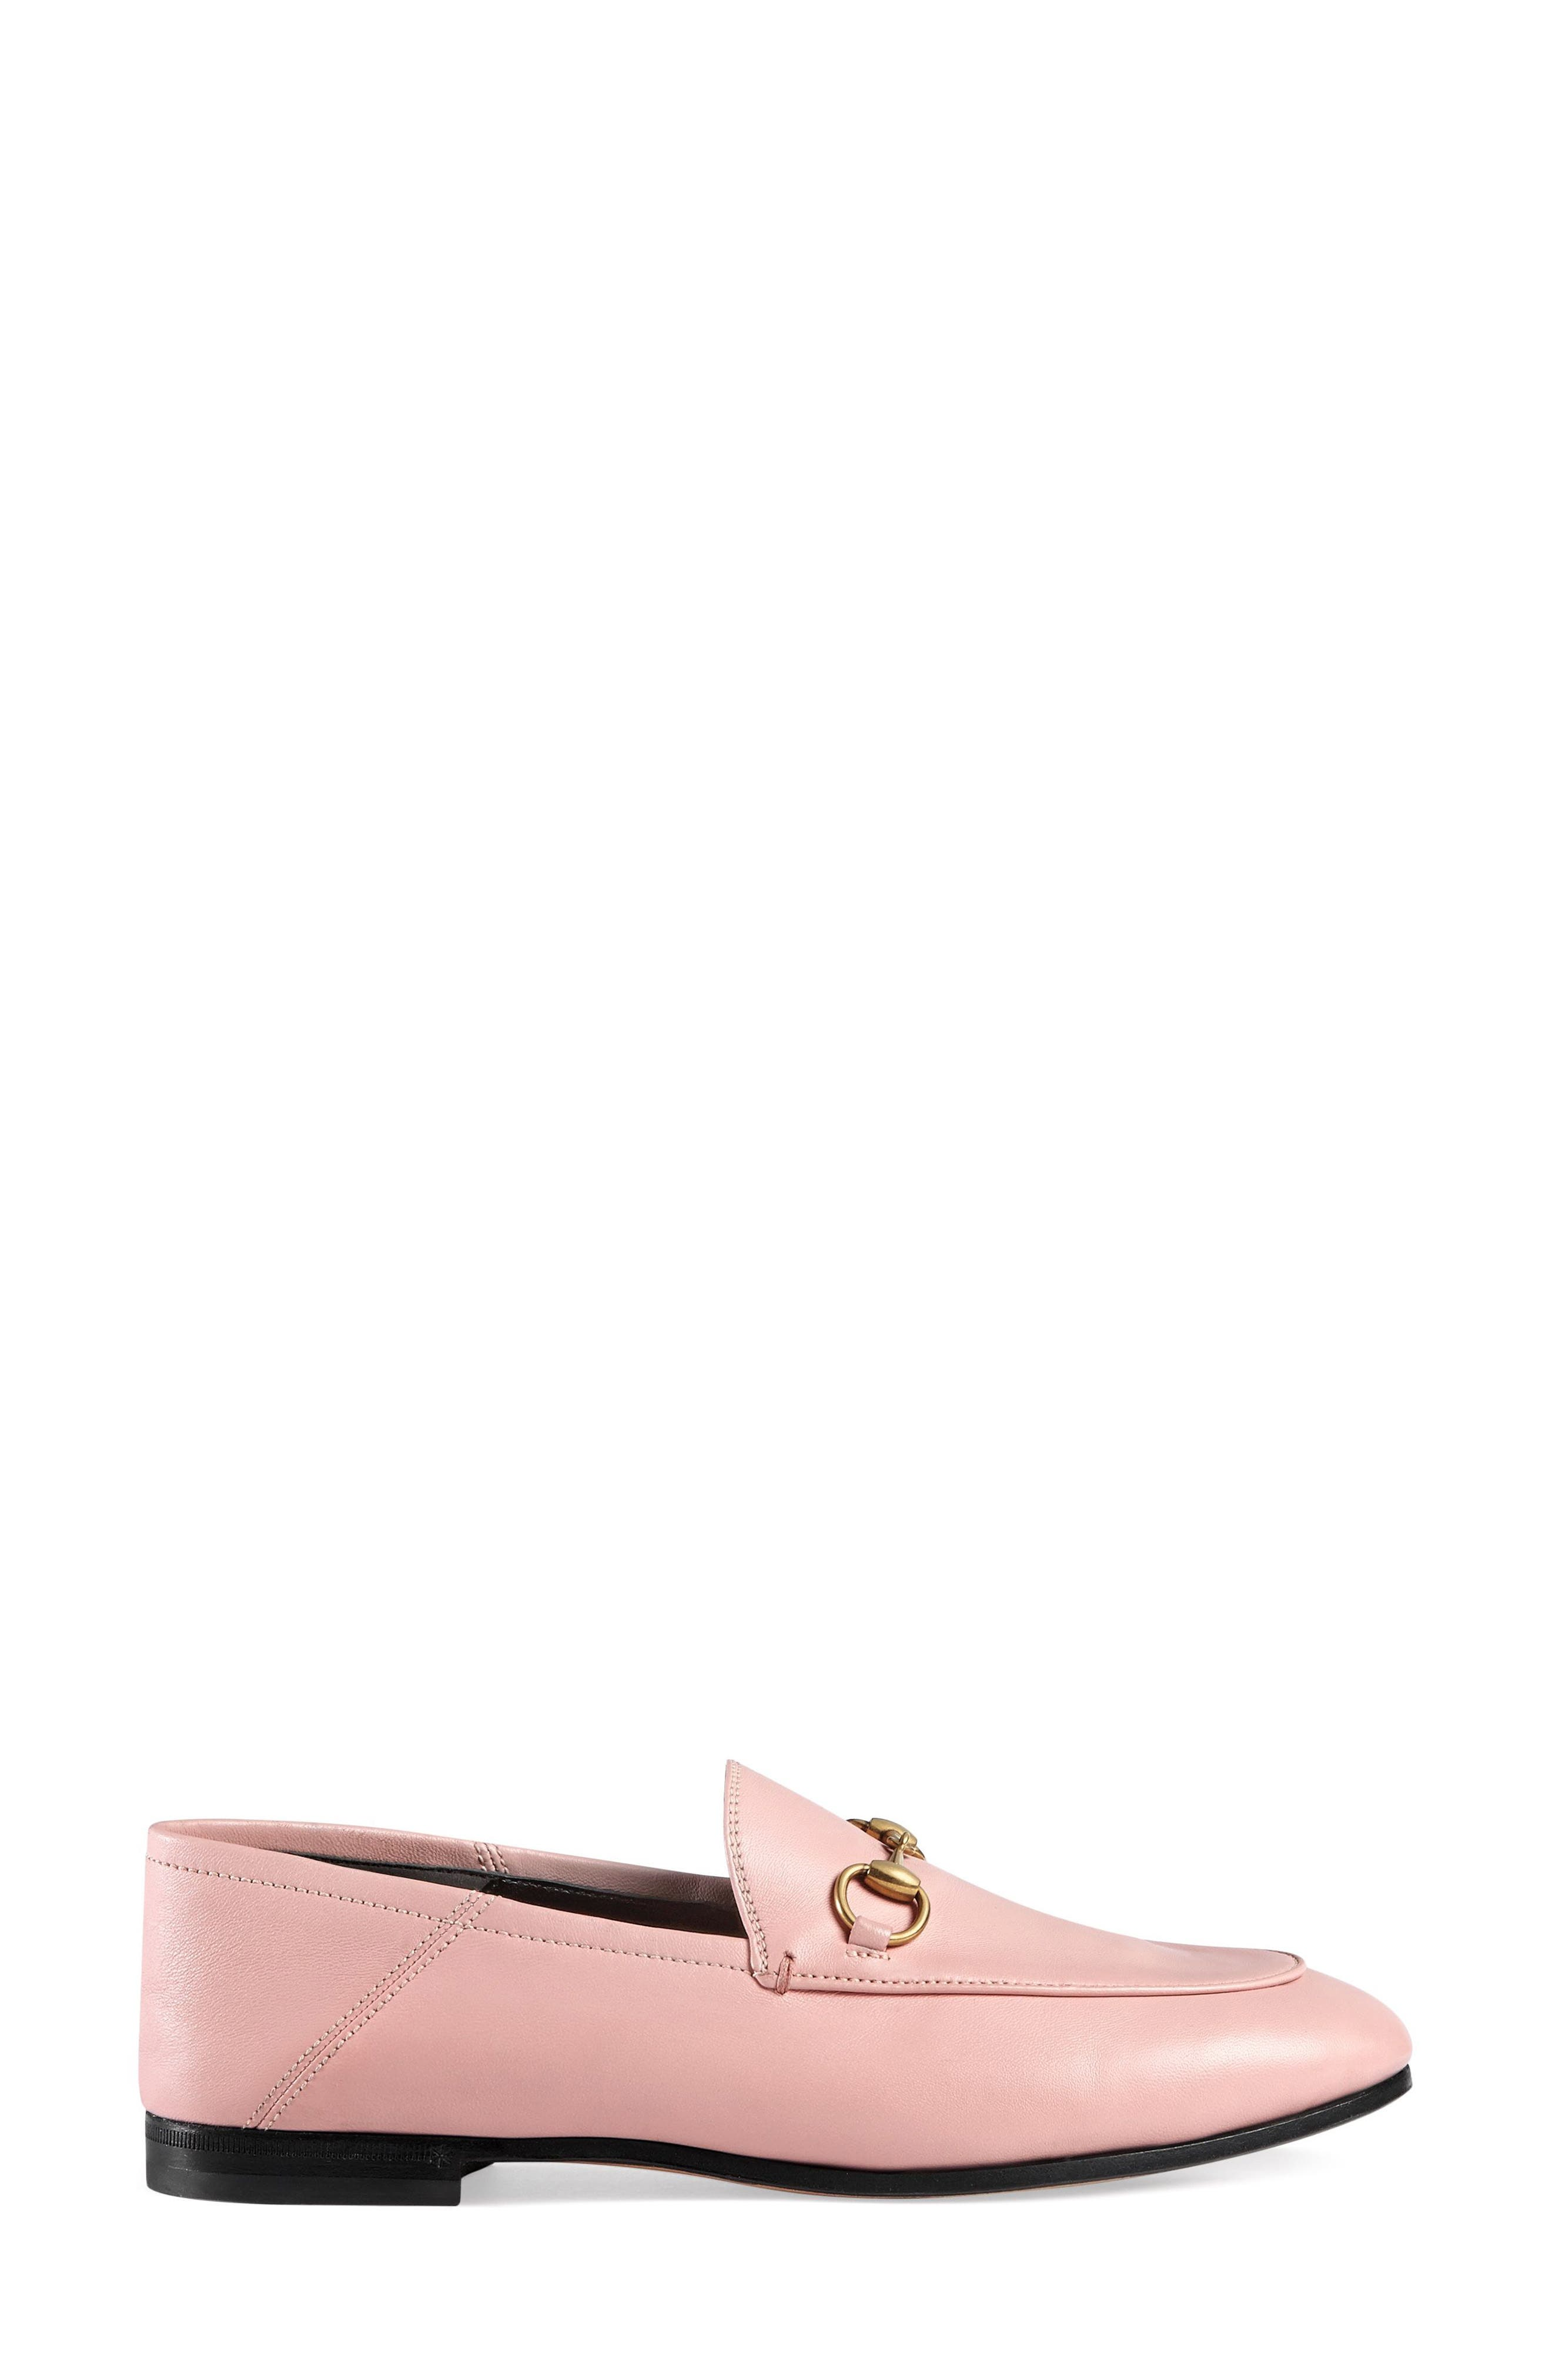 Brixton Convertible Loafer,                             Alternate thumbnail 2, color,                             Light Pink Leather